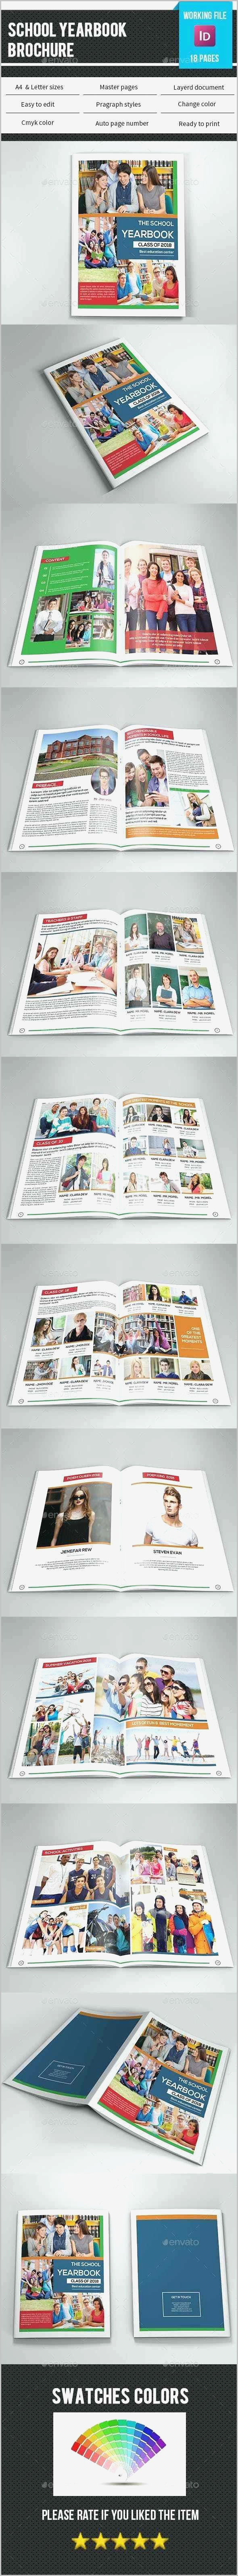 Yearbook Template Indesign Free